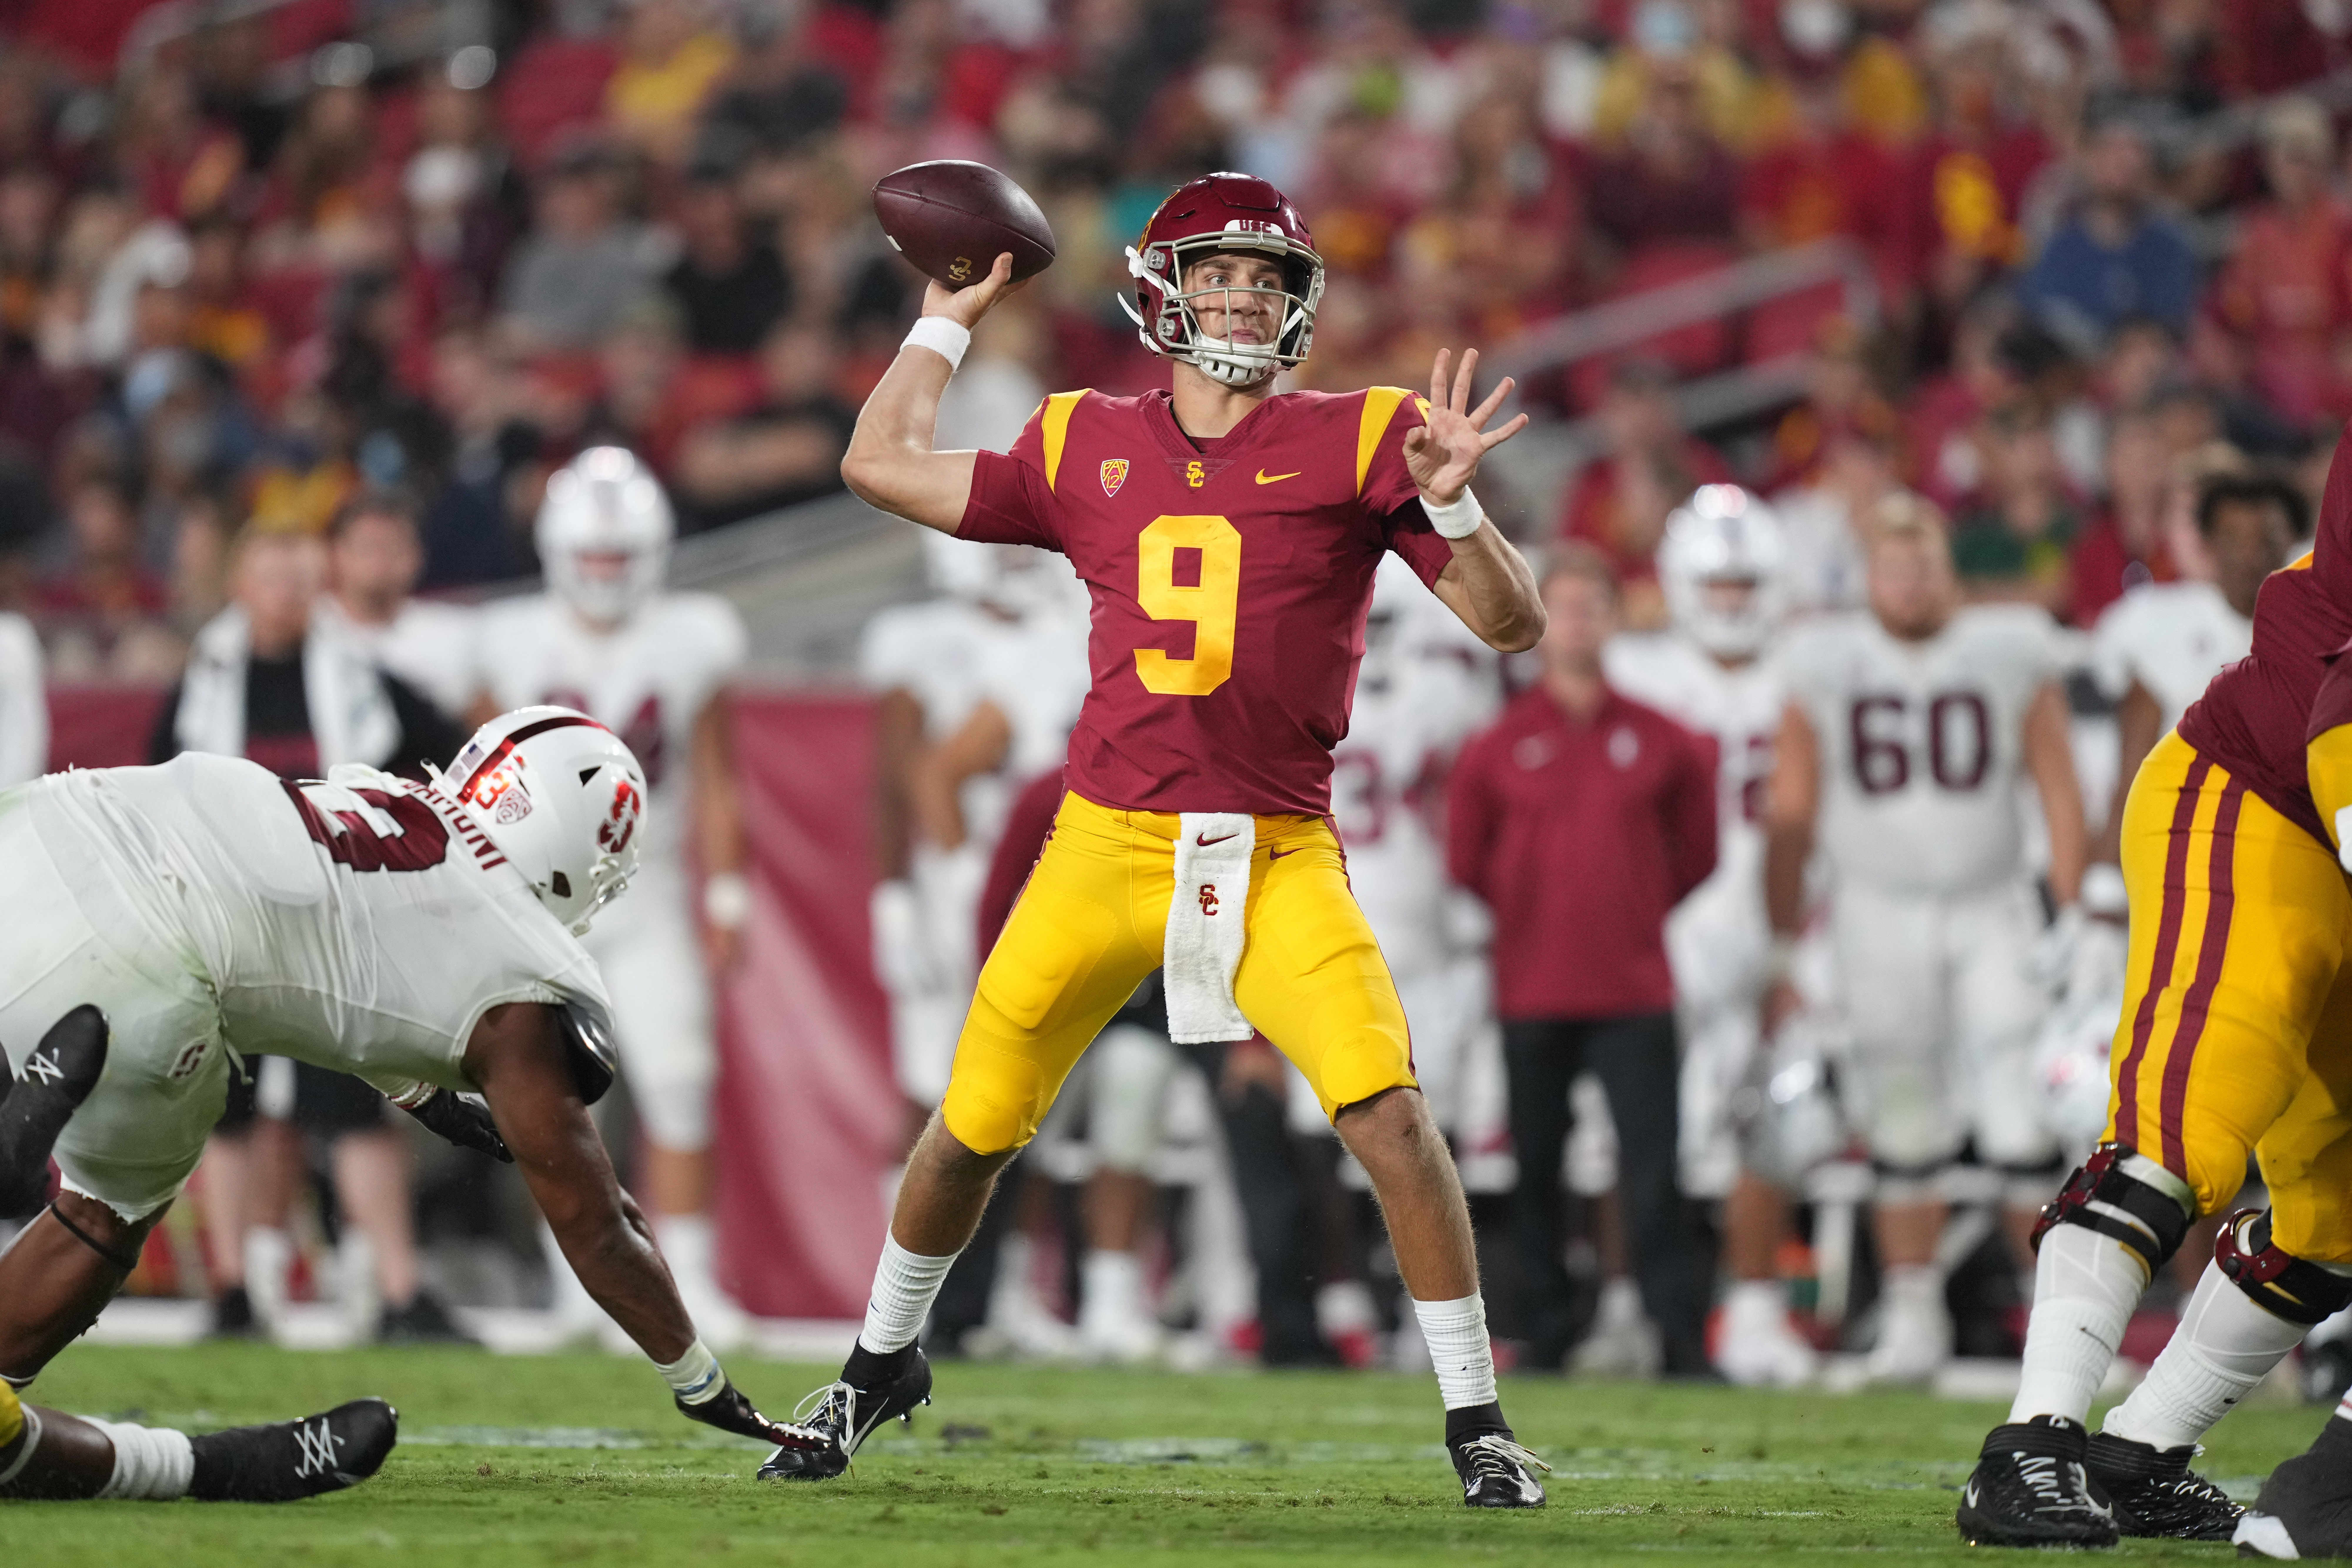 Southern California Trojans quarterback Kedon Slovis throws the ball against the Stanford Cardinal in the third quarter at United Airlines Field at Los Angeles Memorial Coliseum